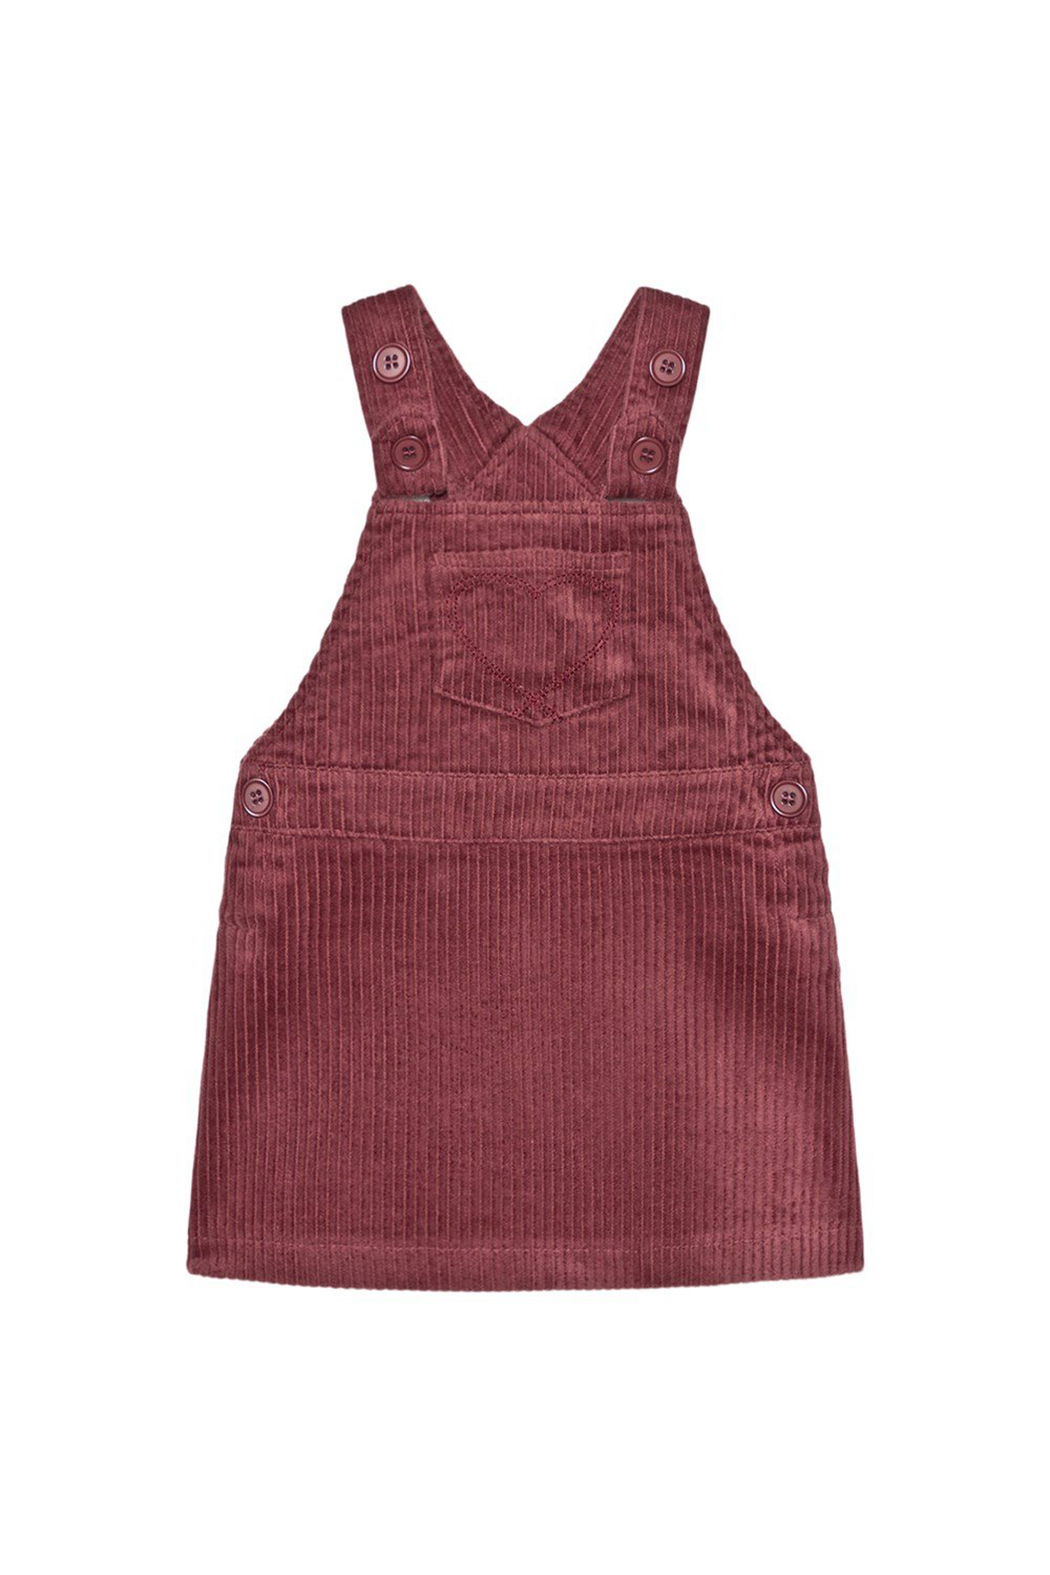 Minymo Spencer Corduroy Jumper - Crushed Berry - Main Image